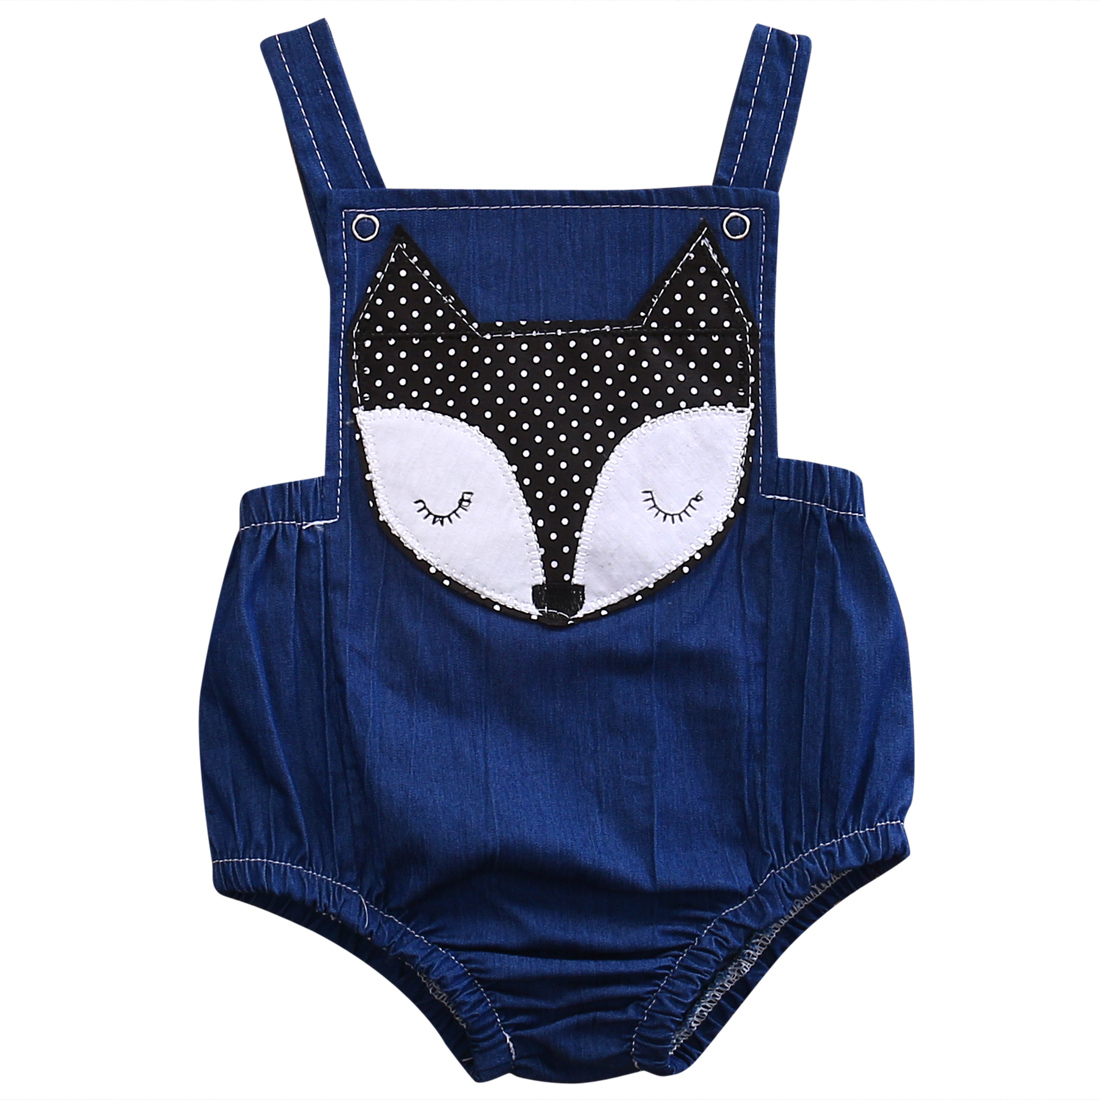 Summer 2017 Infant Toddler Baby Girl Boy Clothing Denim Fox Romper Jumpsuit Clothes Outfit 0-18M